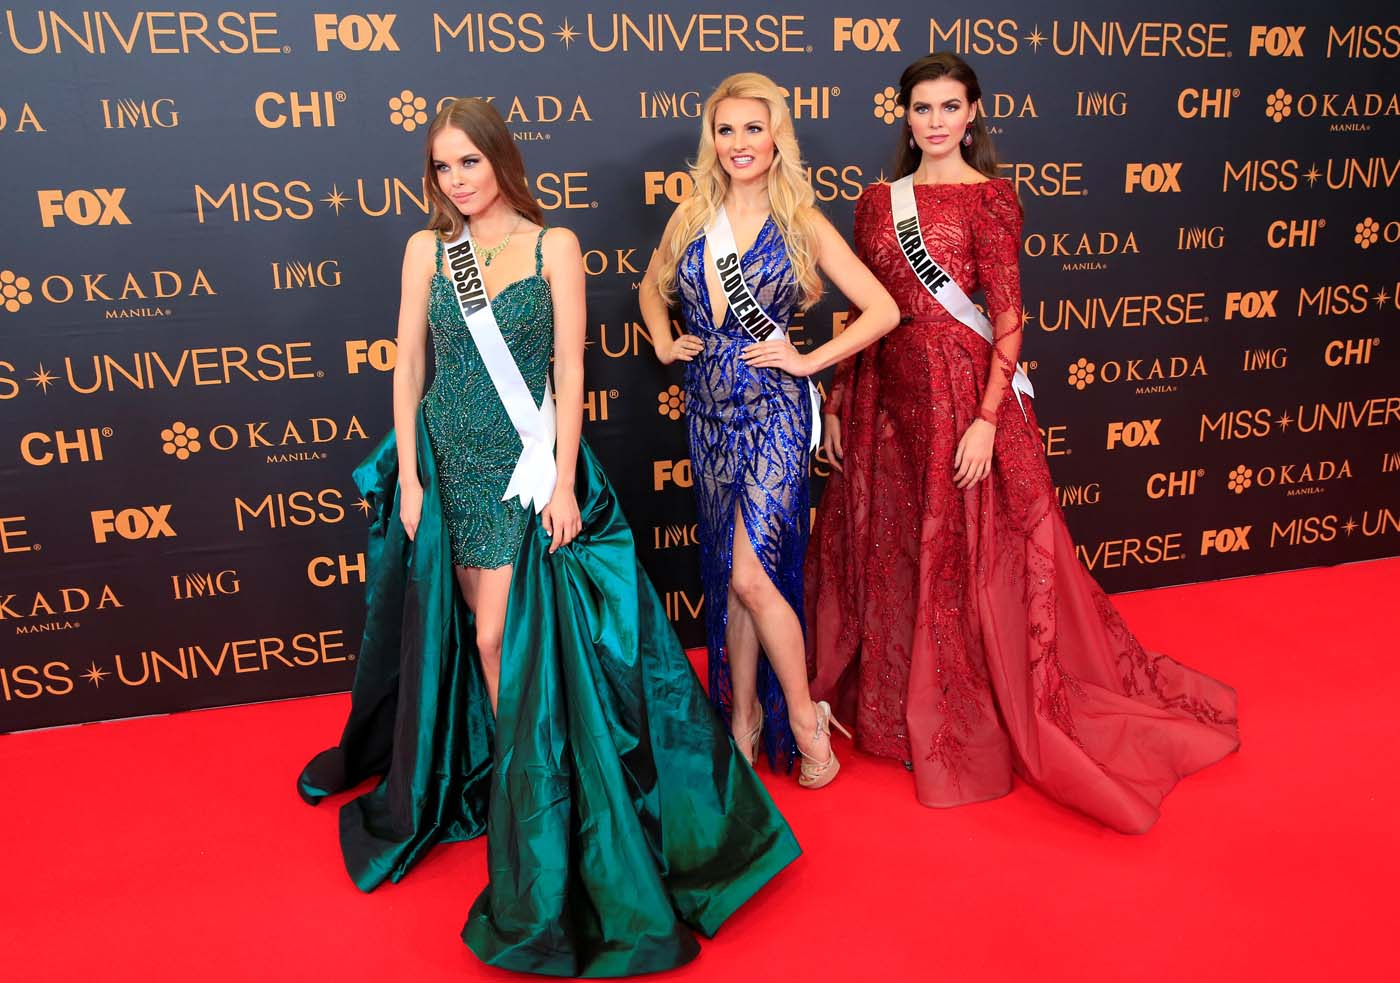 Miss Universe candidates - Miss Russia Yuliana Korolkova, Miss Slovenia Lucija Potocnik and Miss Ukraine Alena Spodynyuk pose for a picture during a red carpet inside a SMX convention in metro Manila, Philippines January 29, 2017. REUTERS/Romeo Ranoco